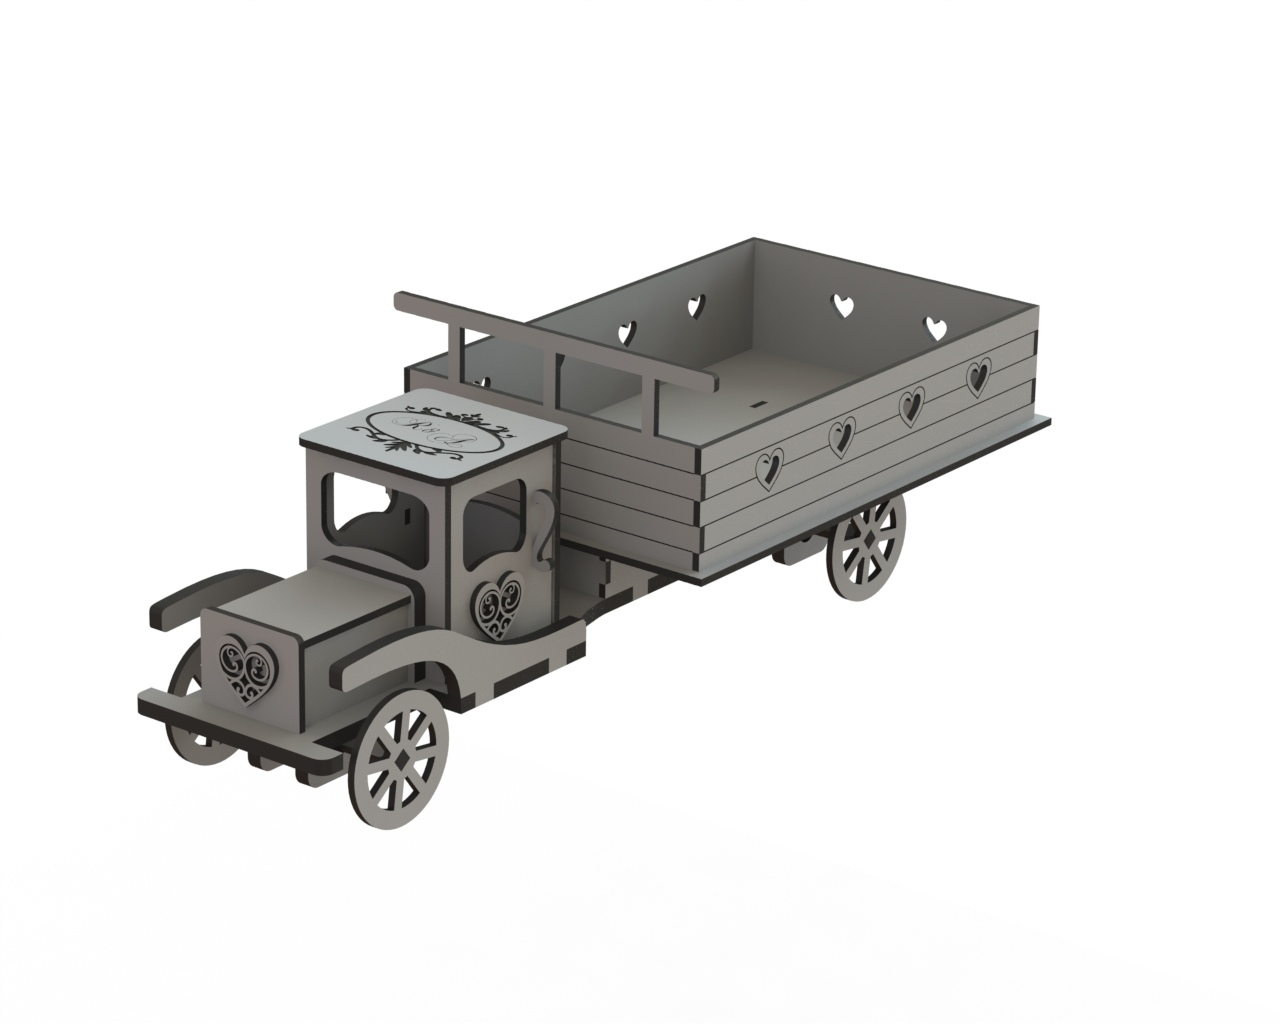 Truck Laser Cut DXF File Free Download - 3axis co